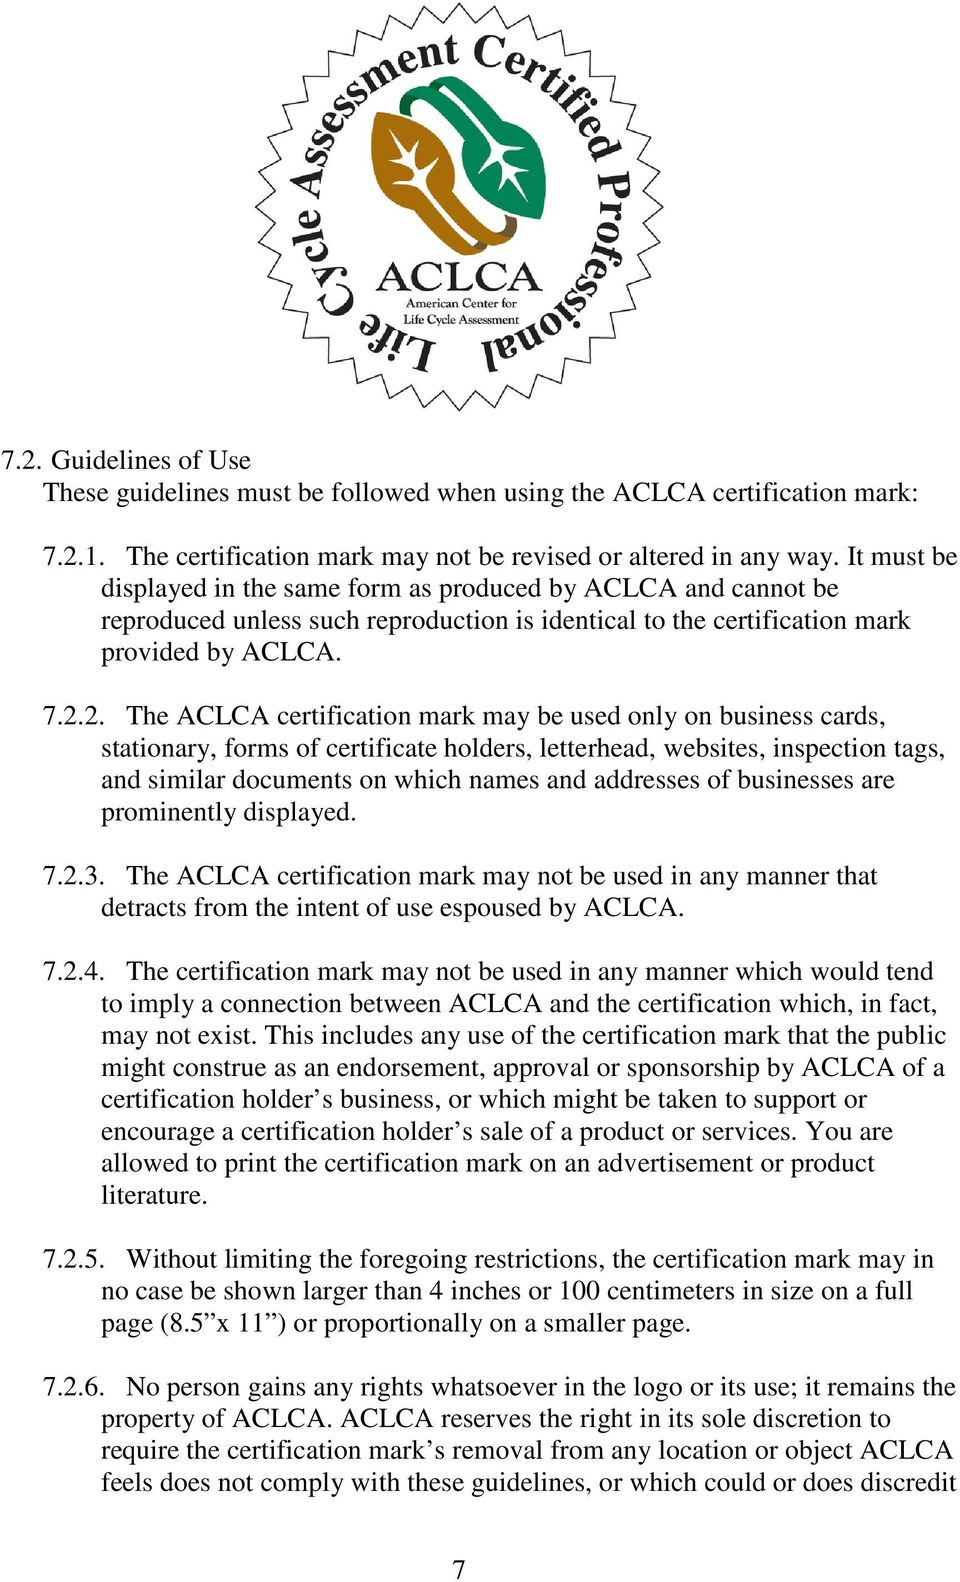 2. The ACLCA certification mark may be used only on business cards, stationary, forms of certificate holders, letterhead, websites, inspection tags, and similar documents on which names and addresses